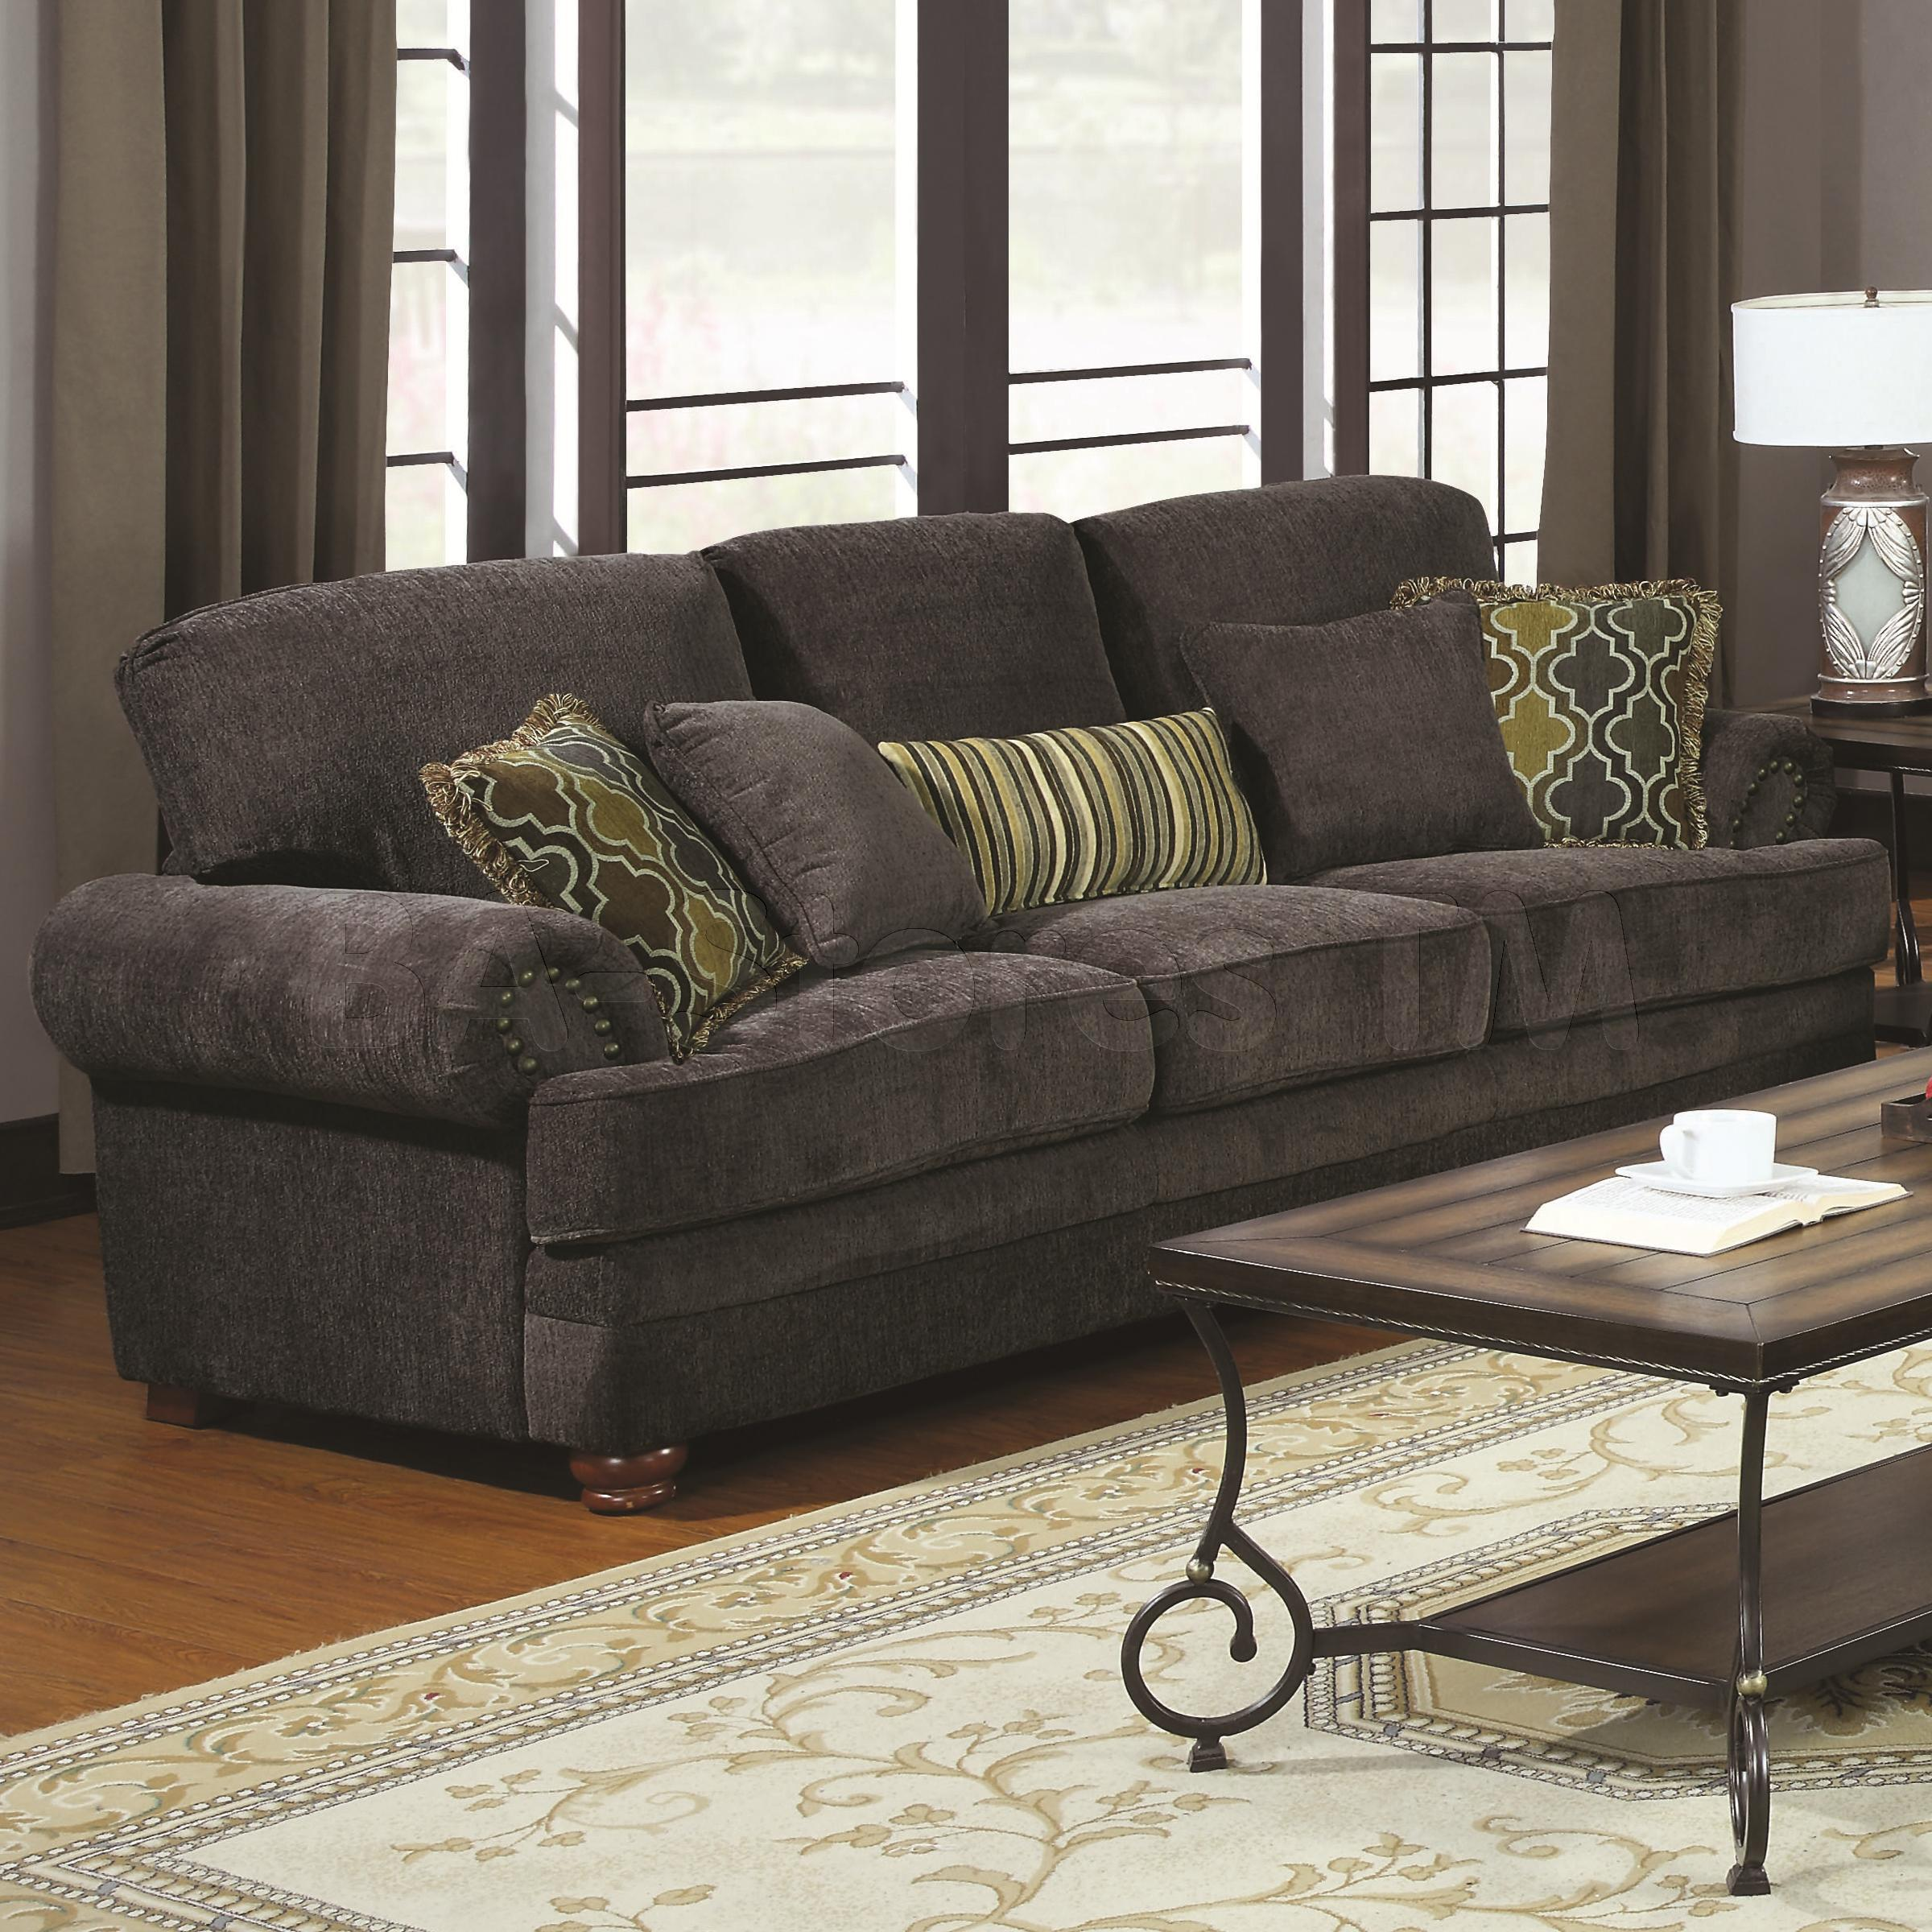 Awesome Colton Smokey Grey Chenille Sofa with Rolled Arms and Throw Pillows grey chenille sofa